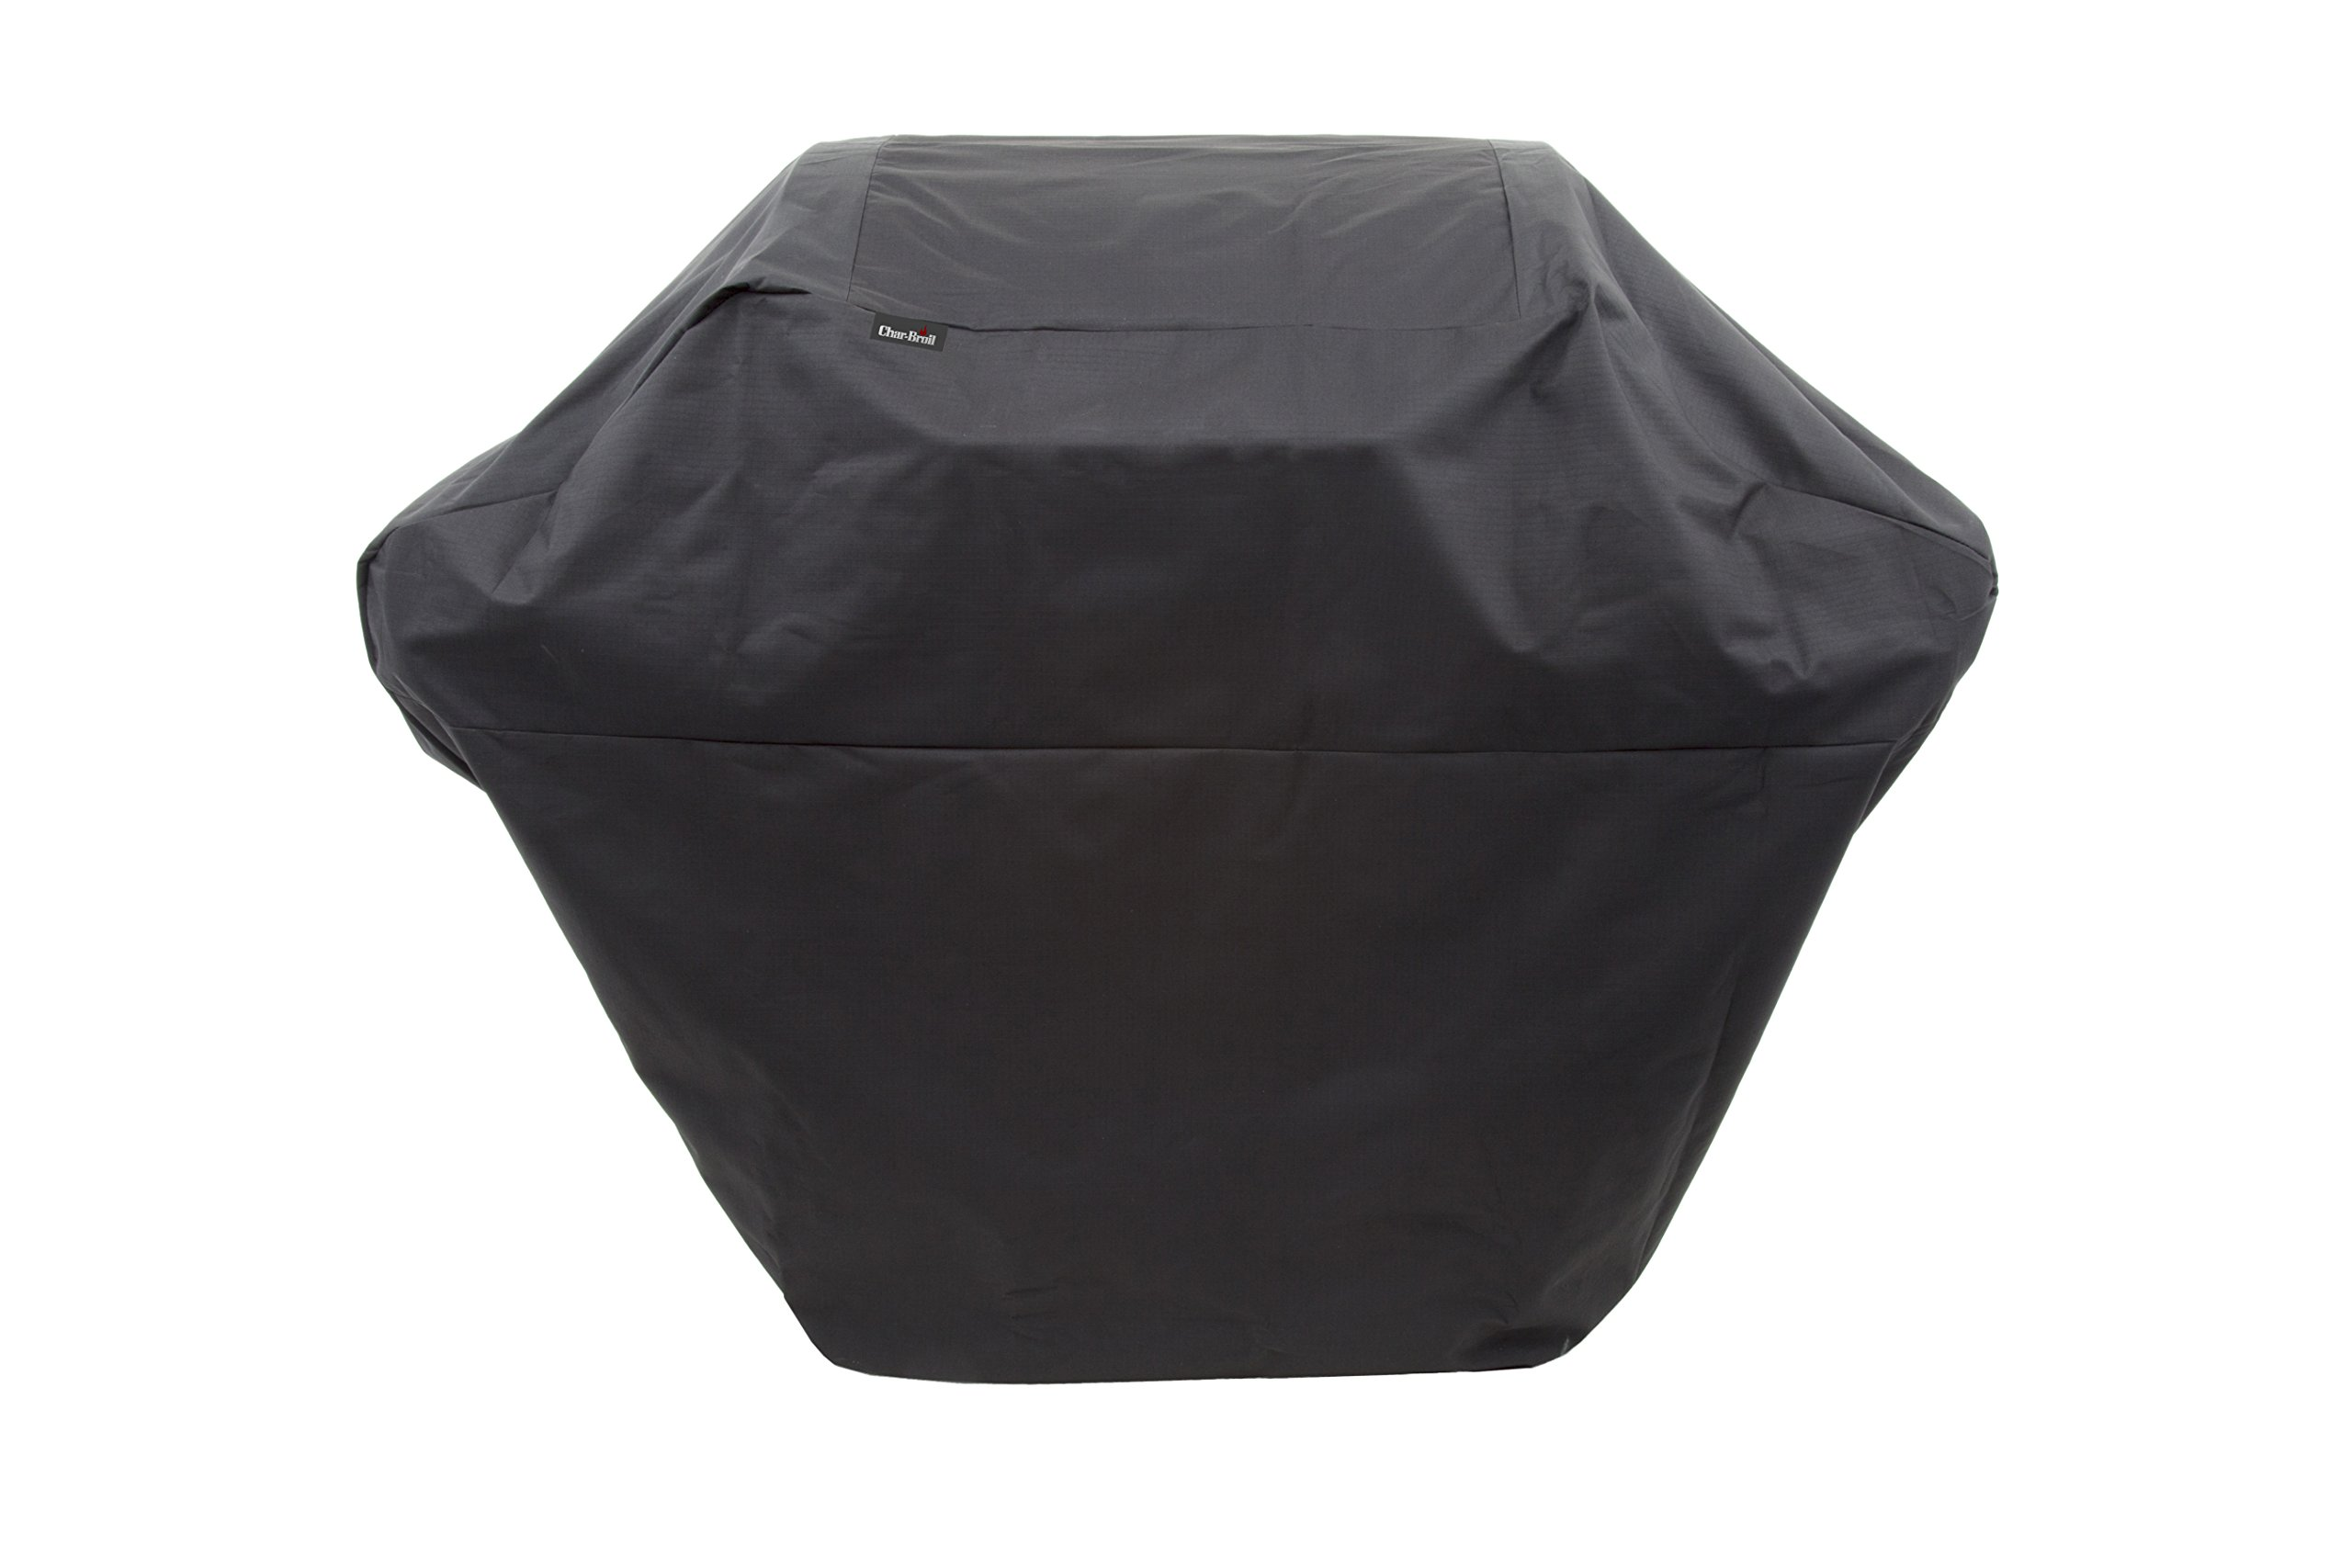 Char-Broil 3-4 Burner Large Rip-Stop Grill Cover by Char-Broil